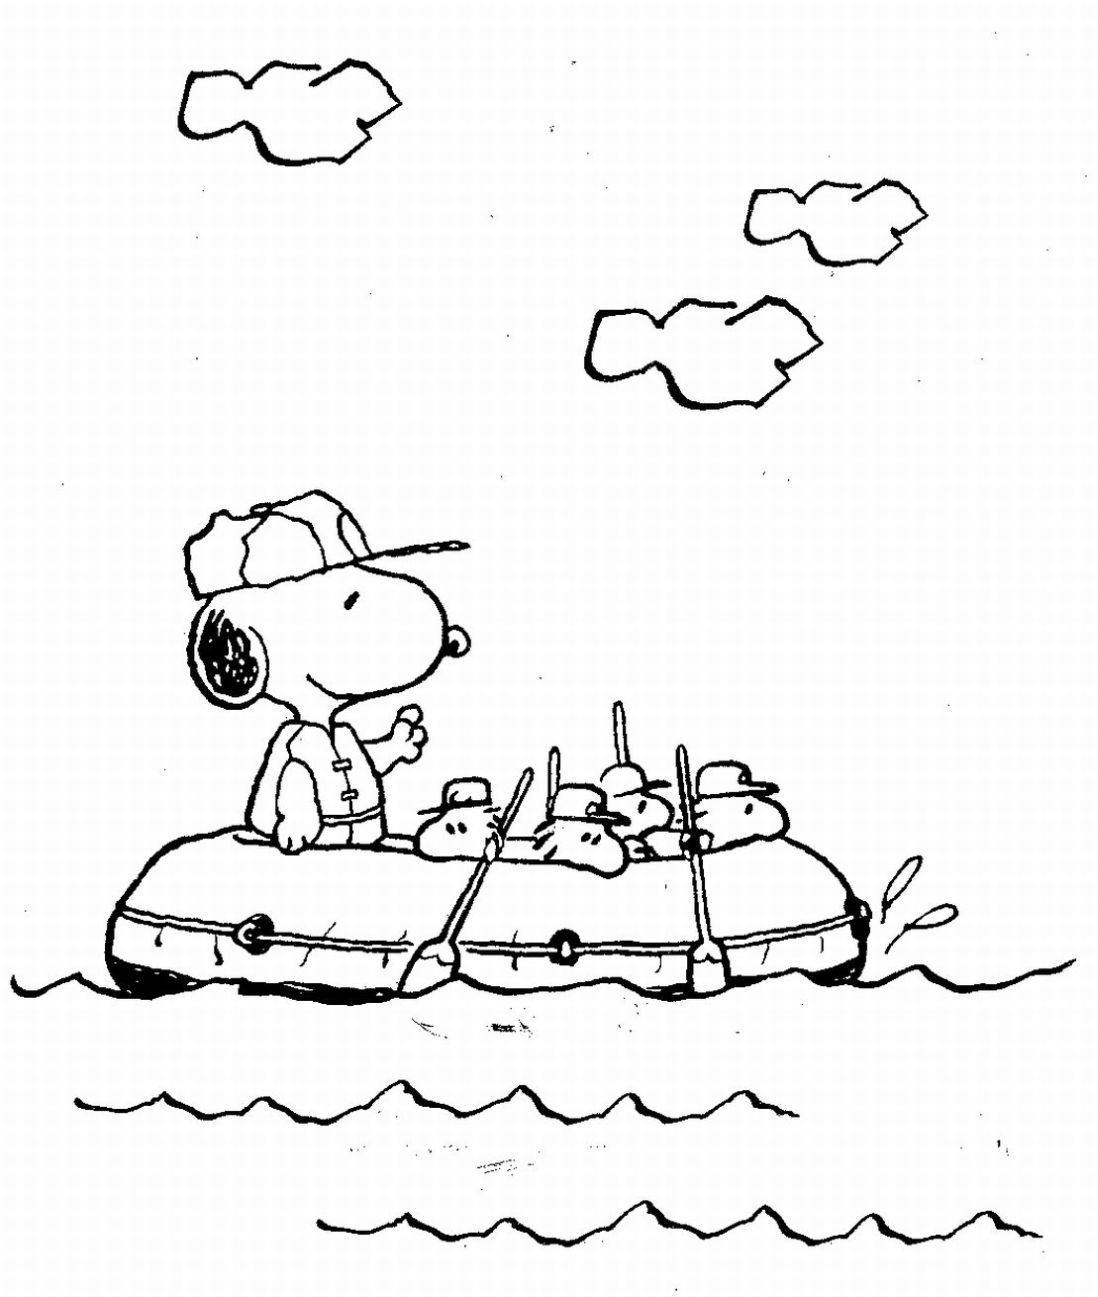 Pin Von Amanda Fisher Auf Baby Kids Pinterest Snoopy Coloring